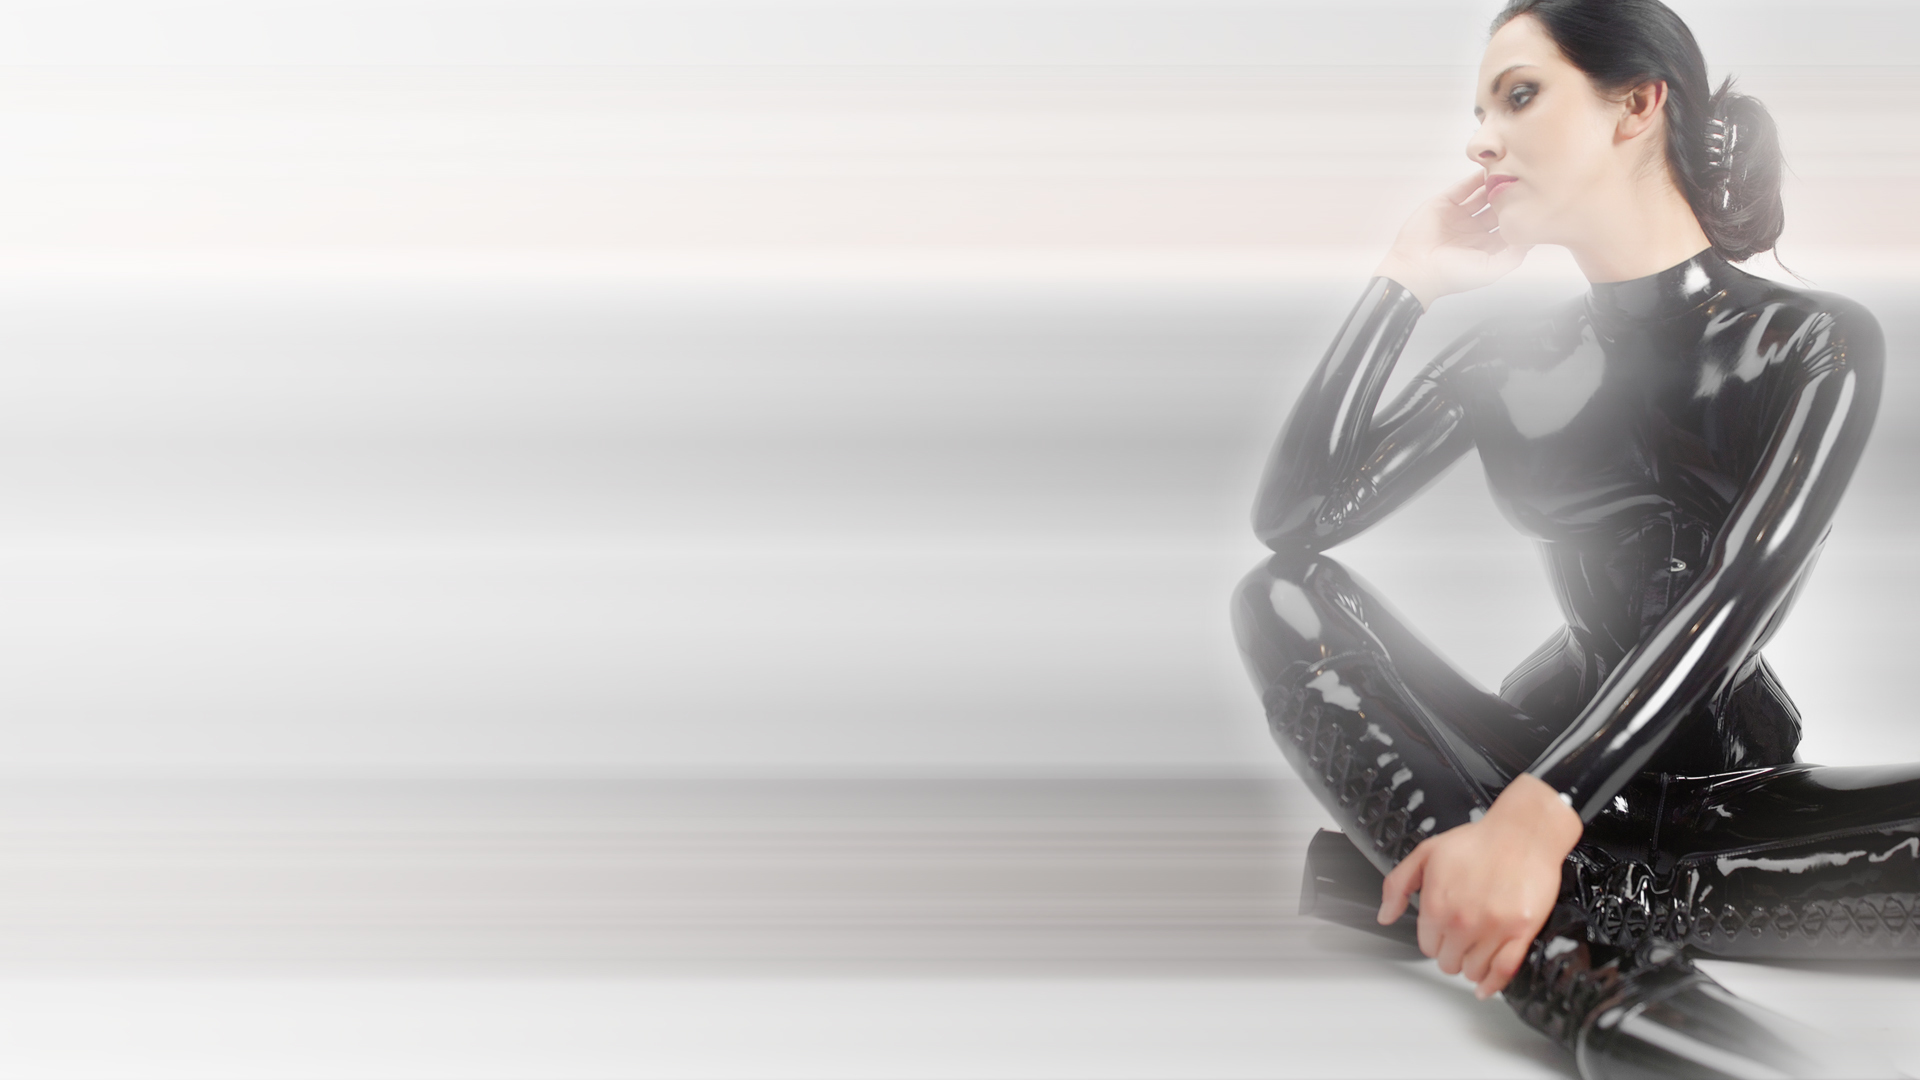 woman fetish latex catsuits HD Wallpaper